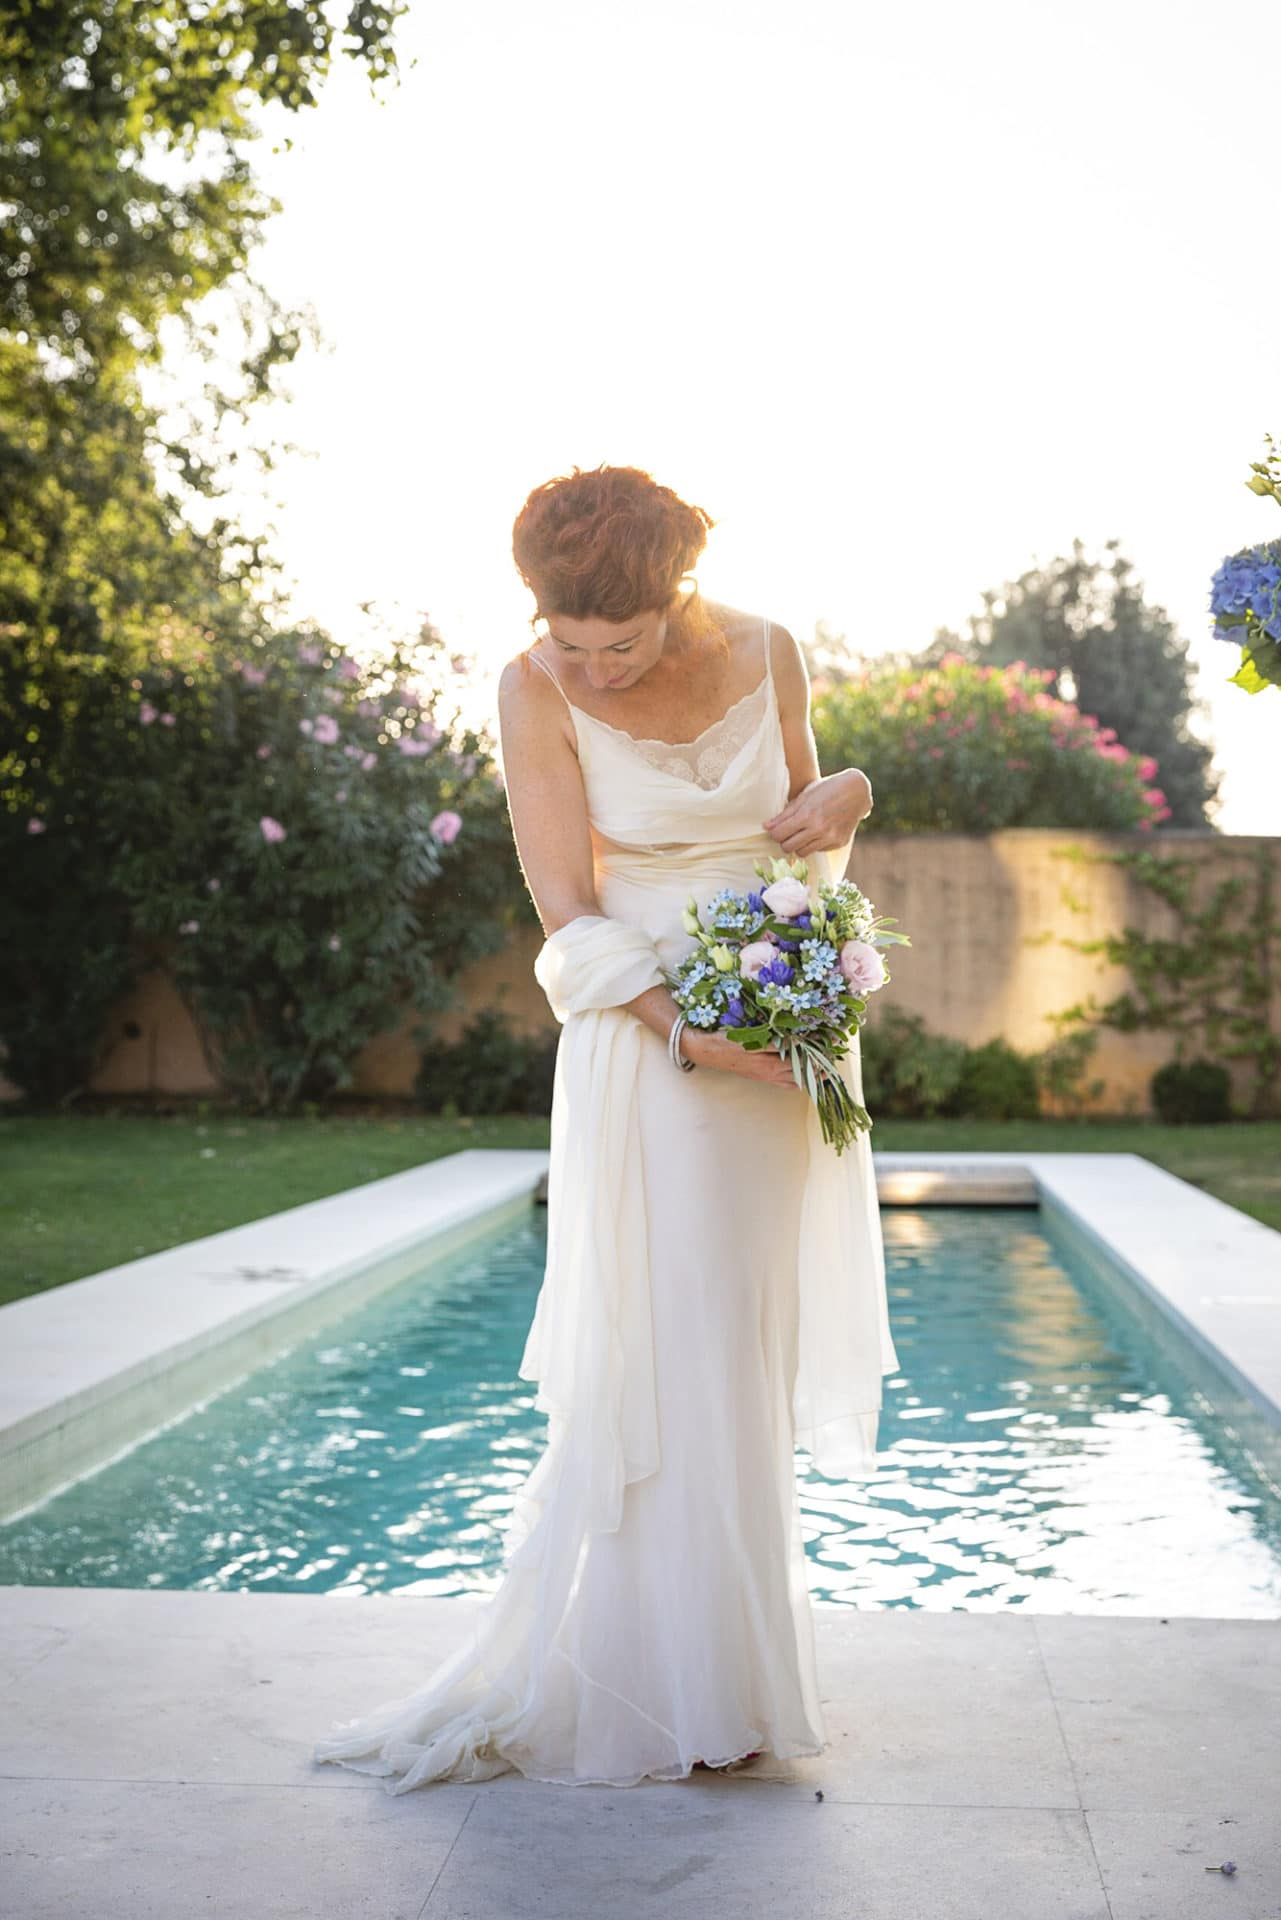 Blue Floral Vow Renewal in Florence